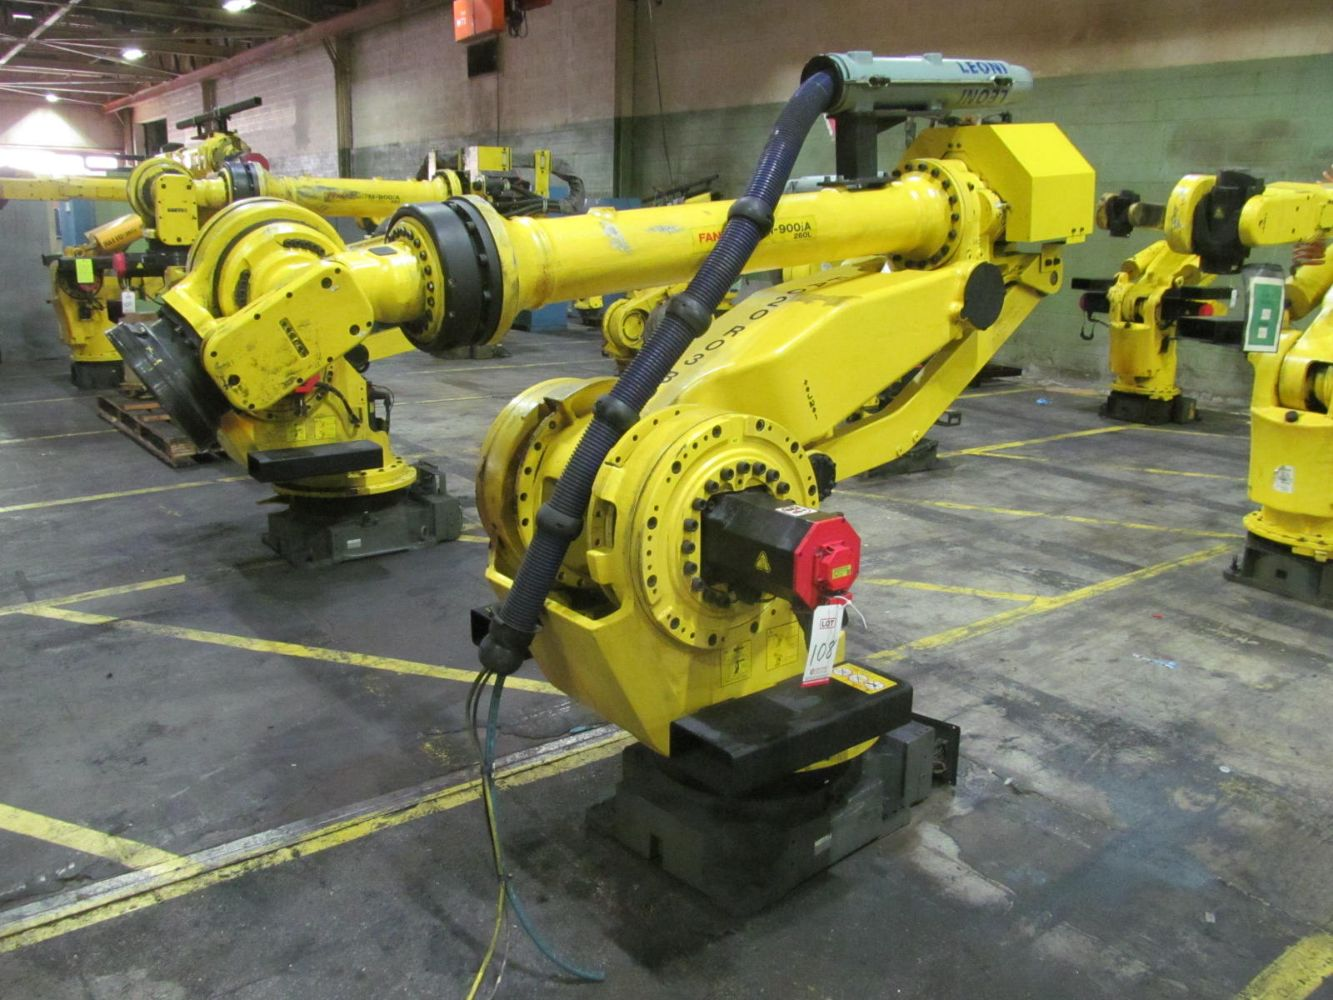 LORDSTOWN MOTORS: (36) FANUC ROBOTS, GANTRY SYSTEMS, 2005 GROVE ROUGH TERRAIN CRANE, STAMPING PRESSES, FROG AGV'S, UTILITY CARTS, CABINETS